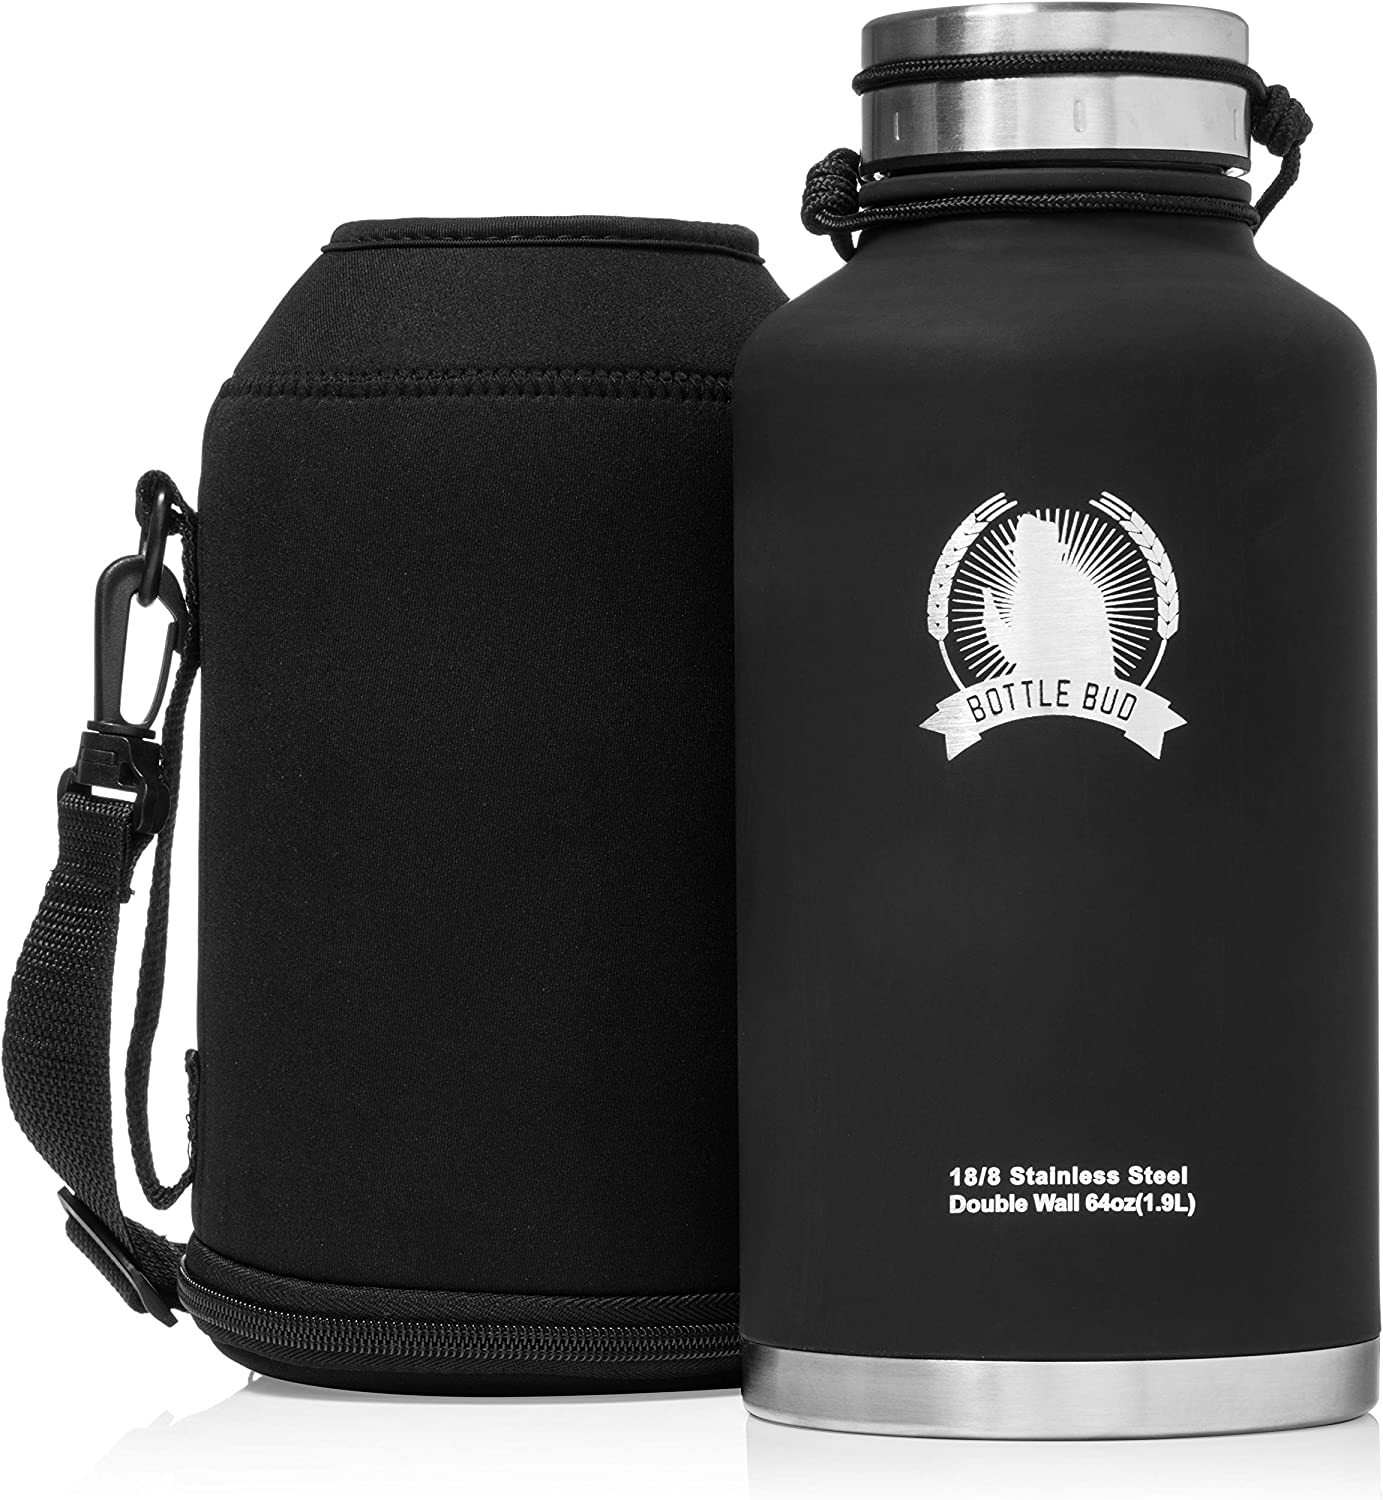 Bottle Bud Insulated Beer Growler – Keeps Beer Carbonated and Cold for More Than 24 Hours – Keeps Drinks Hot for 12 Hours – Leak Proof Lid, Neoprene Carry Case – Stainless Steel Growler for Beer 64 oz